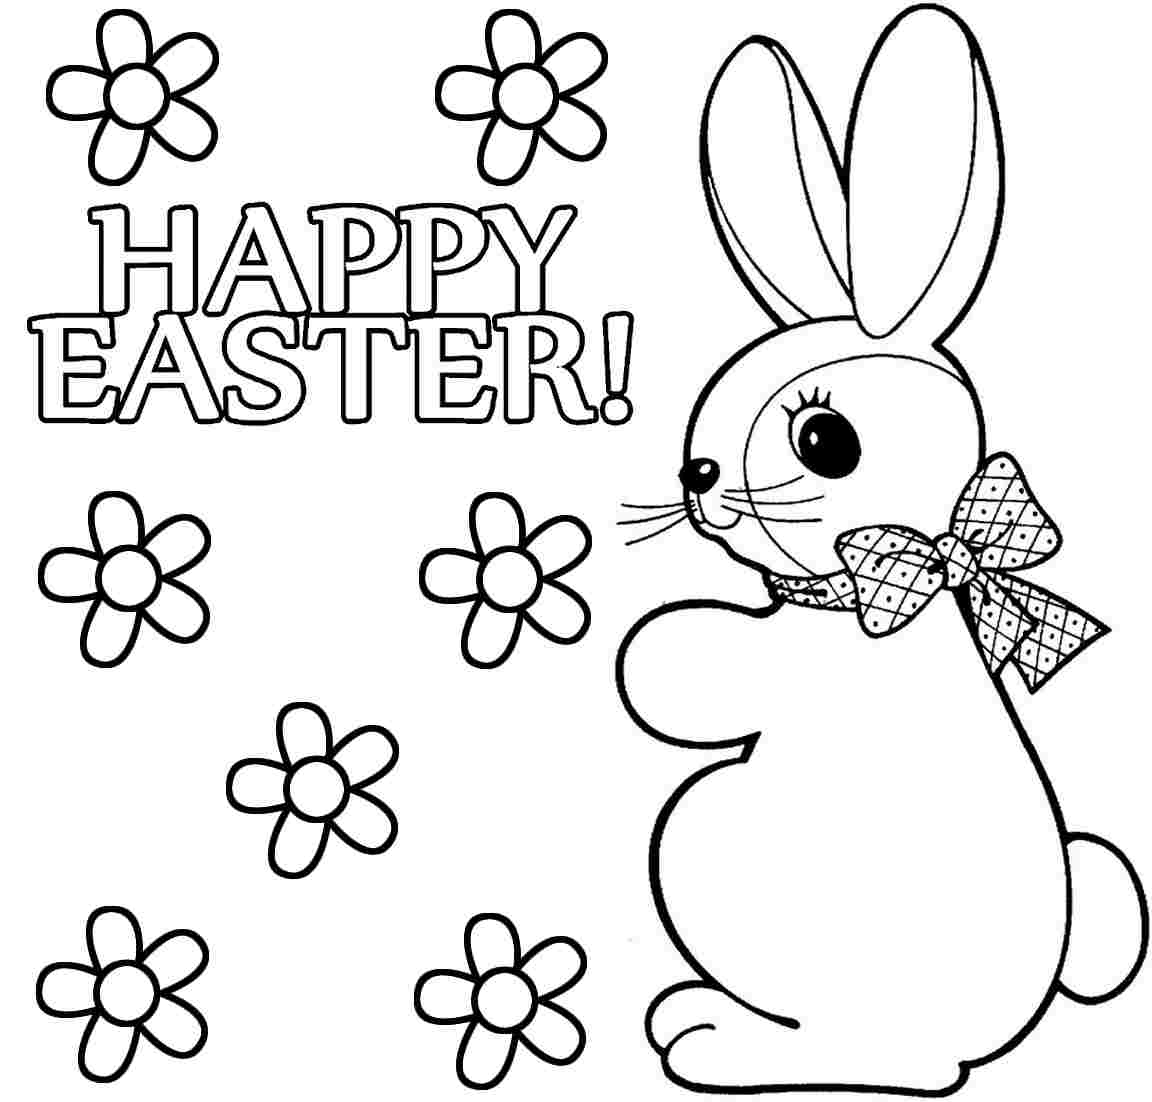 Free online easter coloring